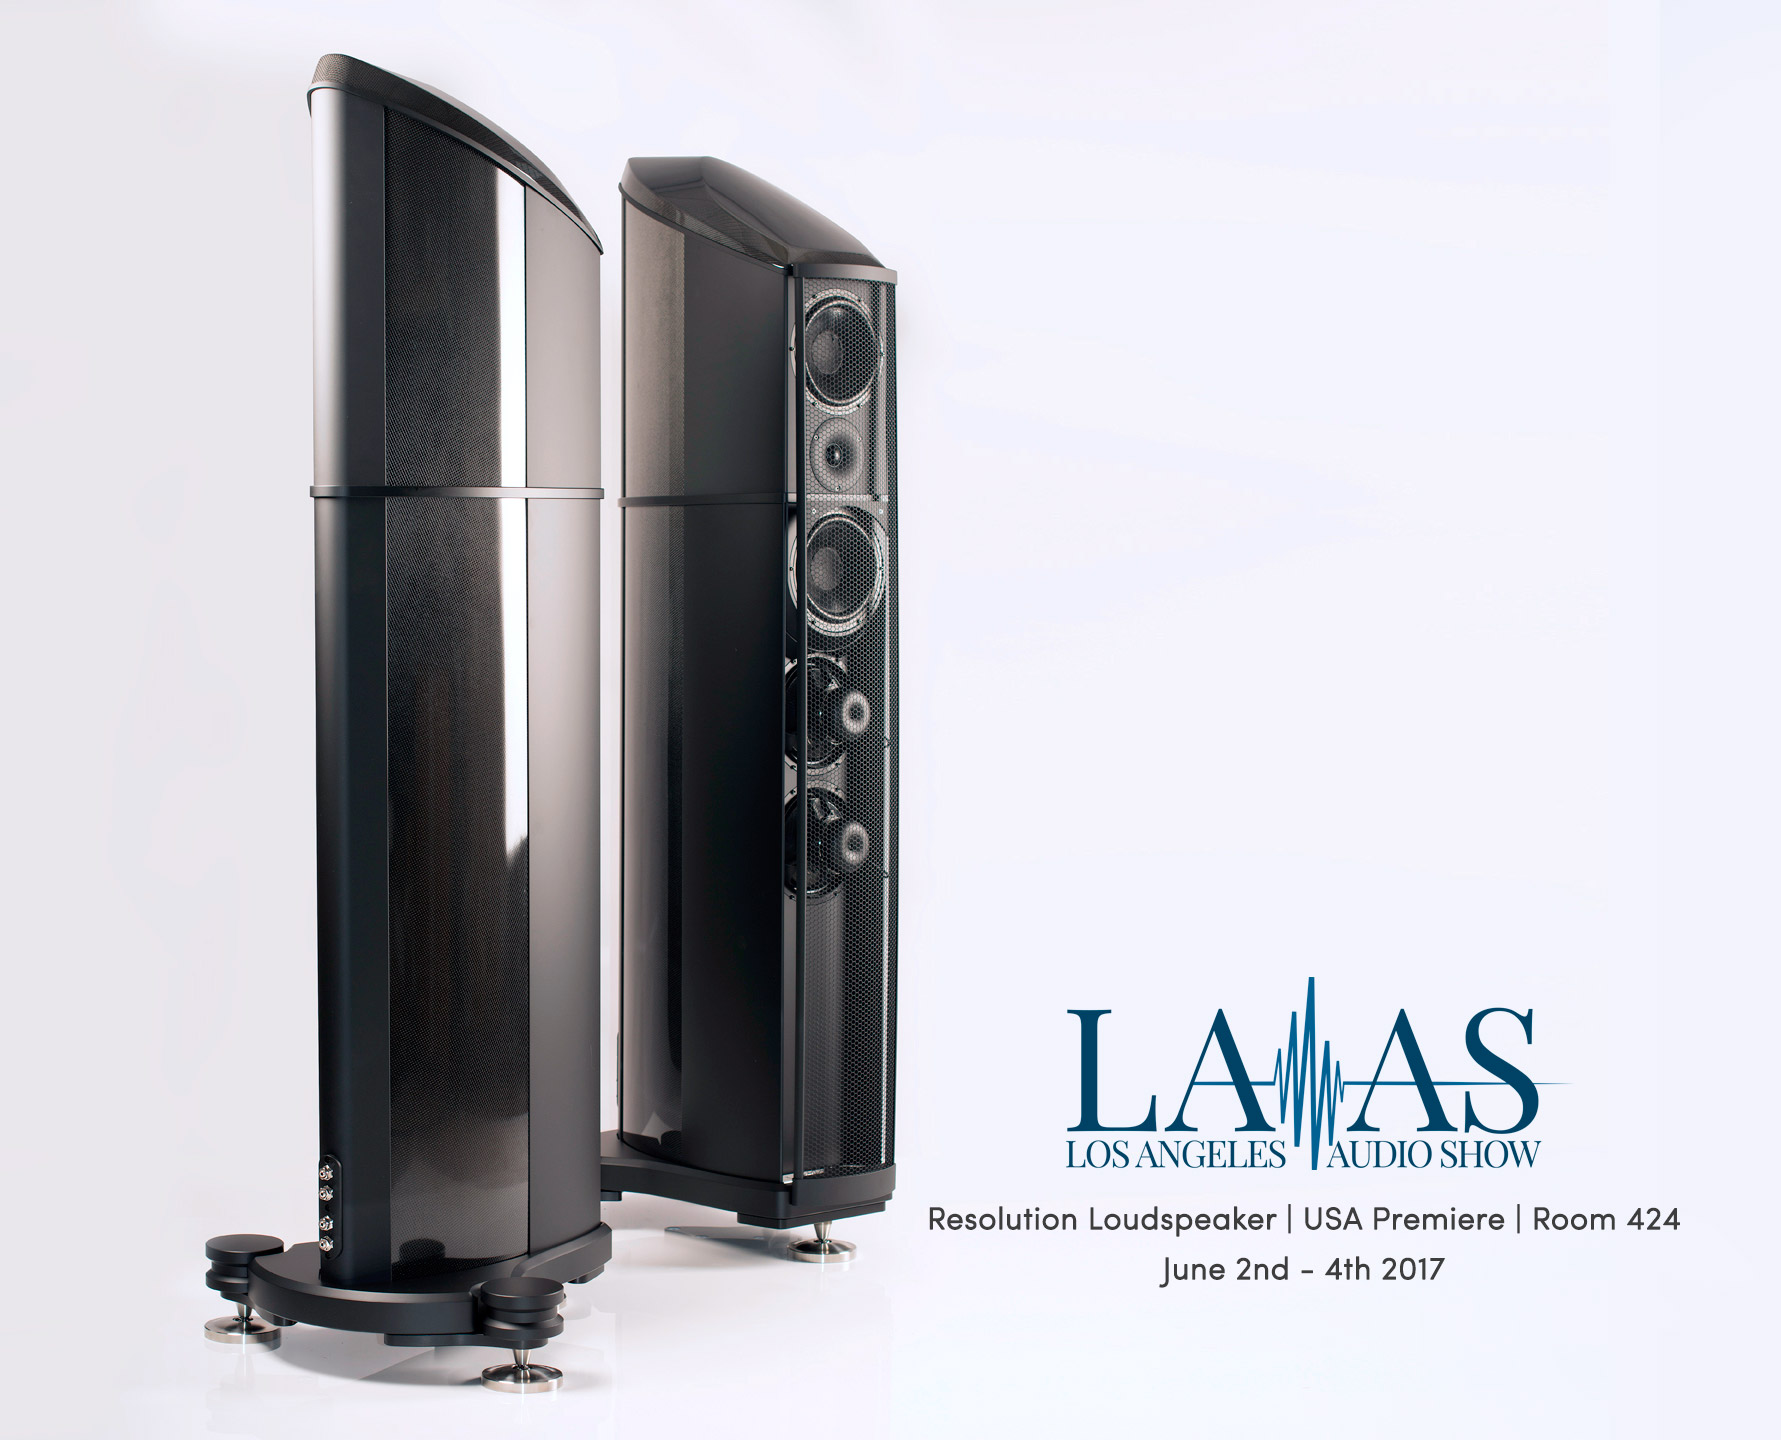 Geometry Series Resolution loudspeaker debuting at the Los Angeles Audio Show 2017, poster showing the Tactic II Isobaric Drive System in a Burr Walnut finished loudspeaker